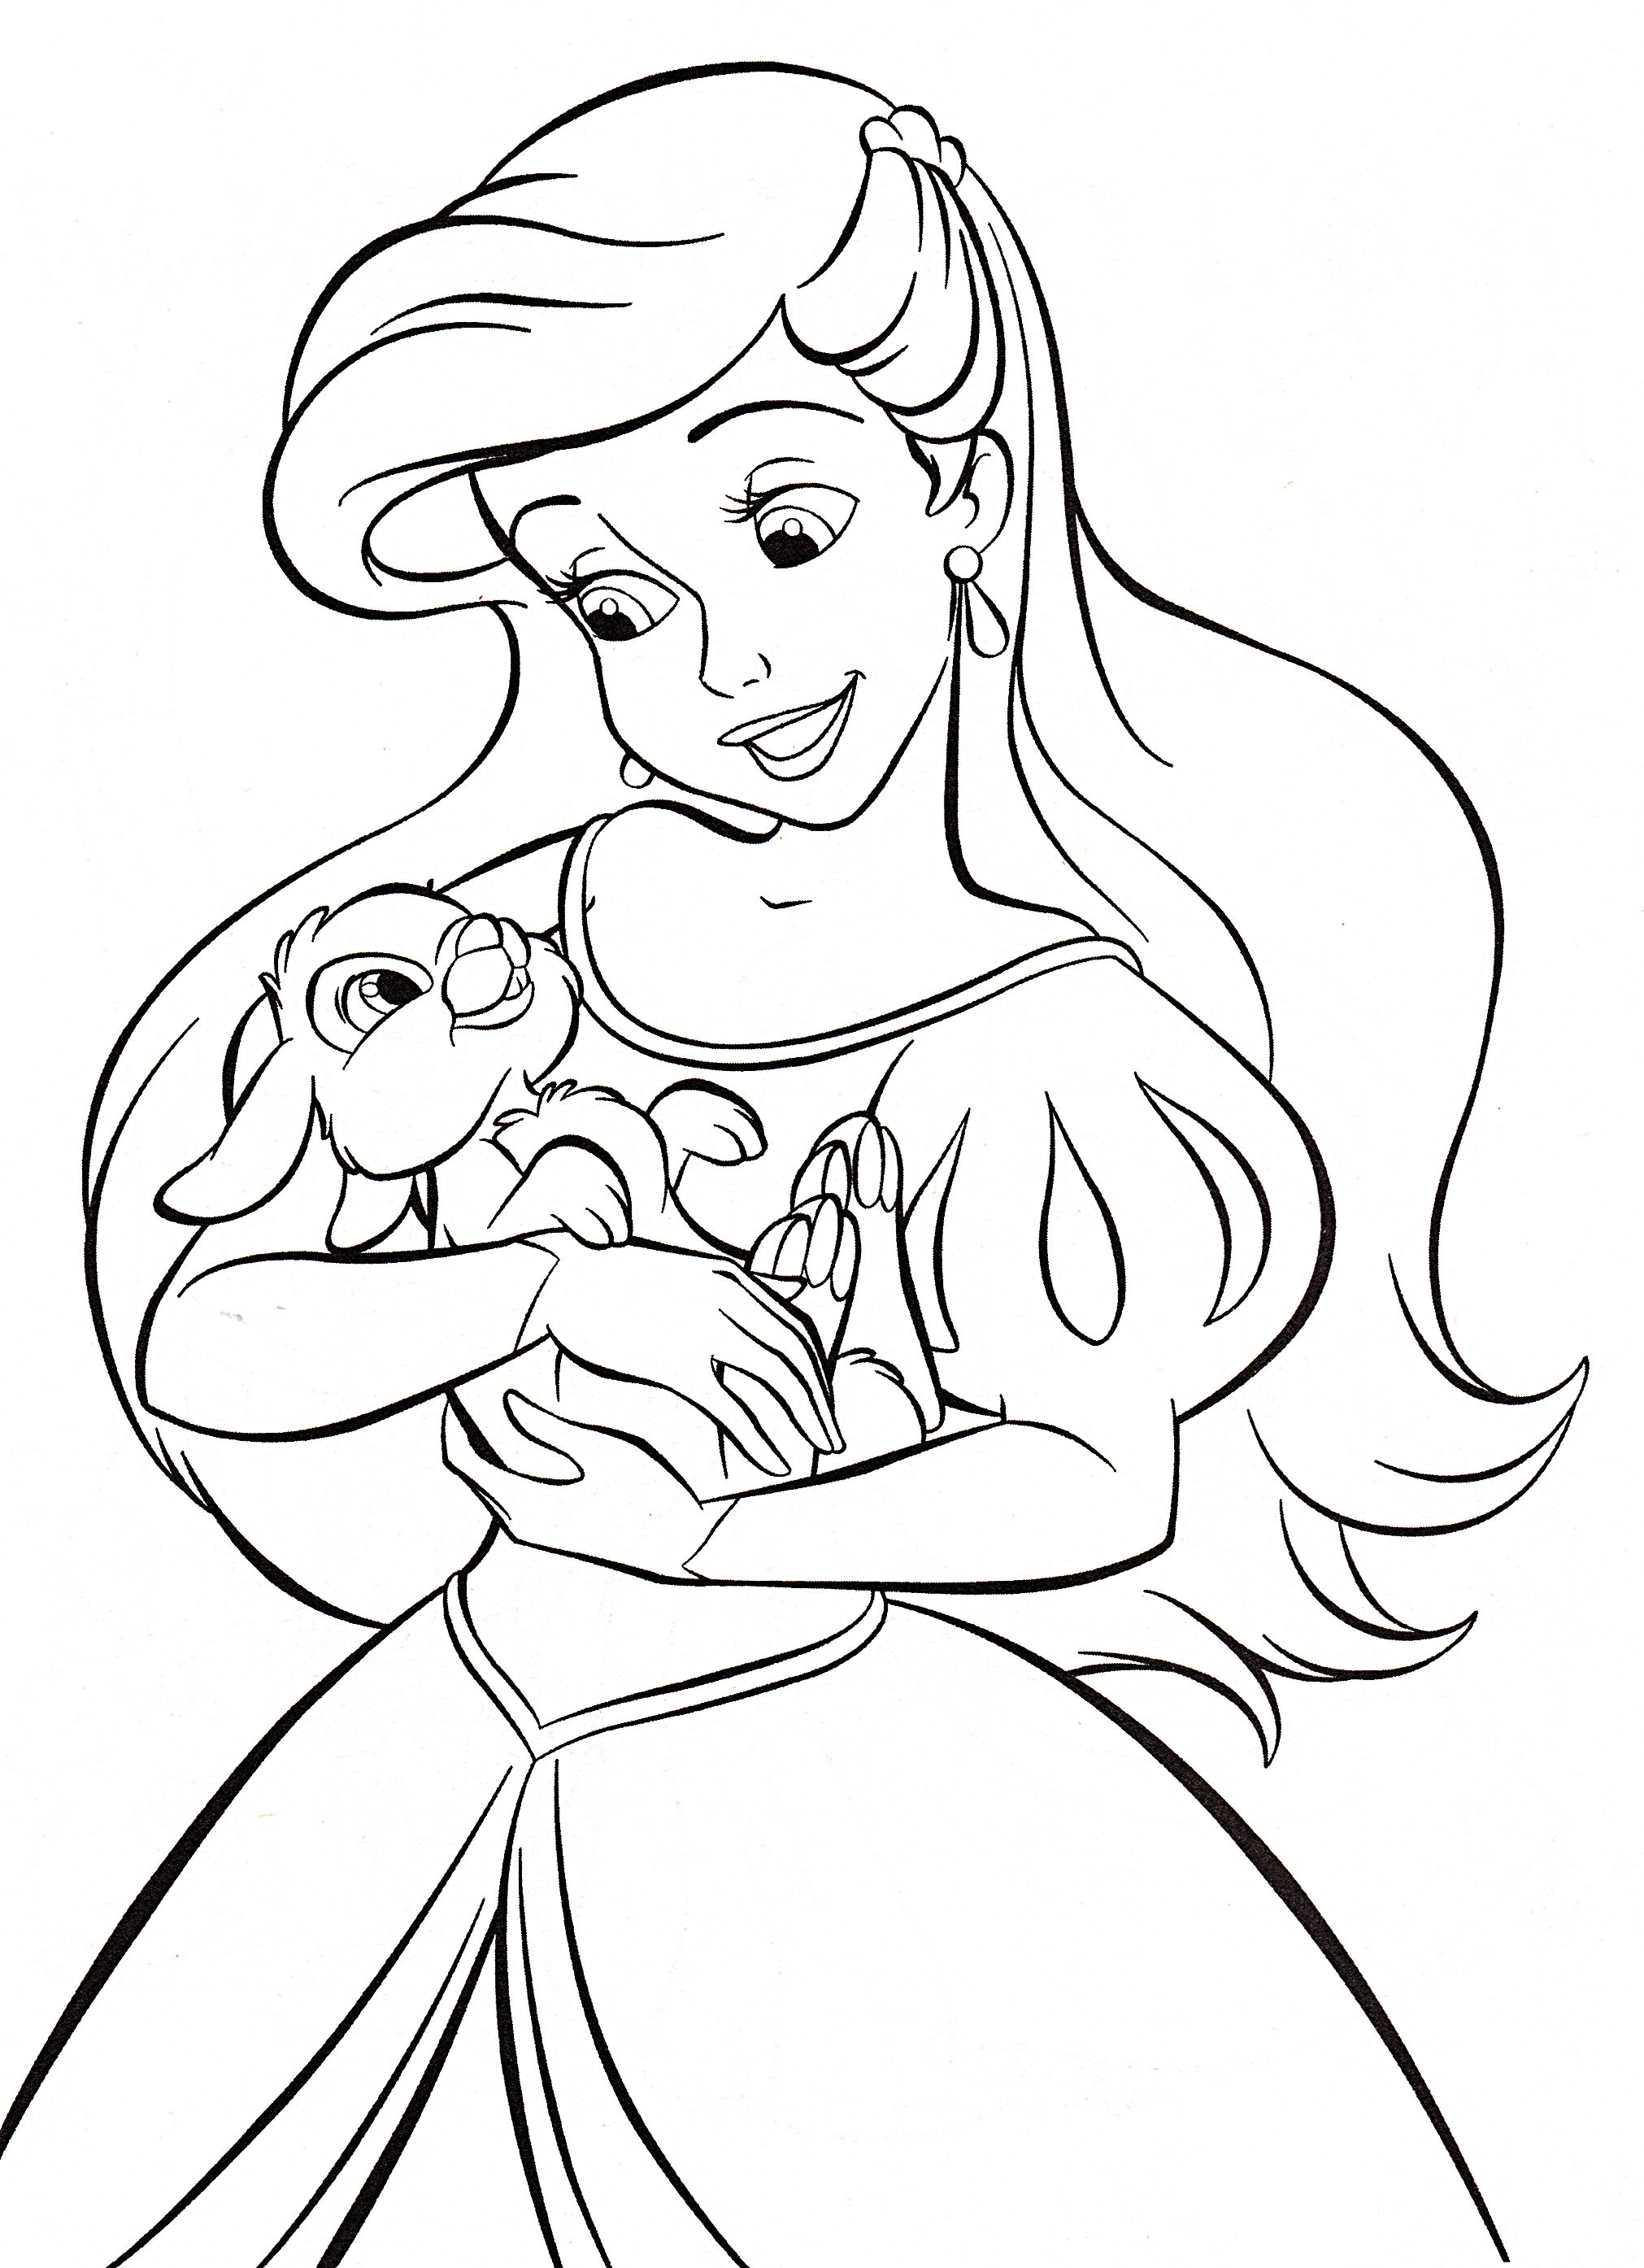 Walt Disney Characters Photo: Walt Disney Coloring Pages - Princess Ariel | Disney  princess coloring pages, Ariel coloring pages, Mermaid coloring pages